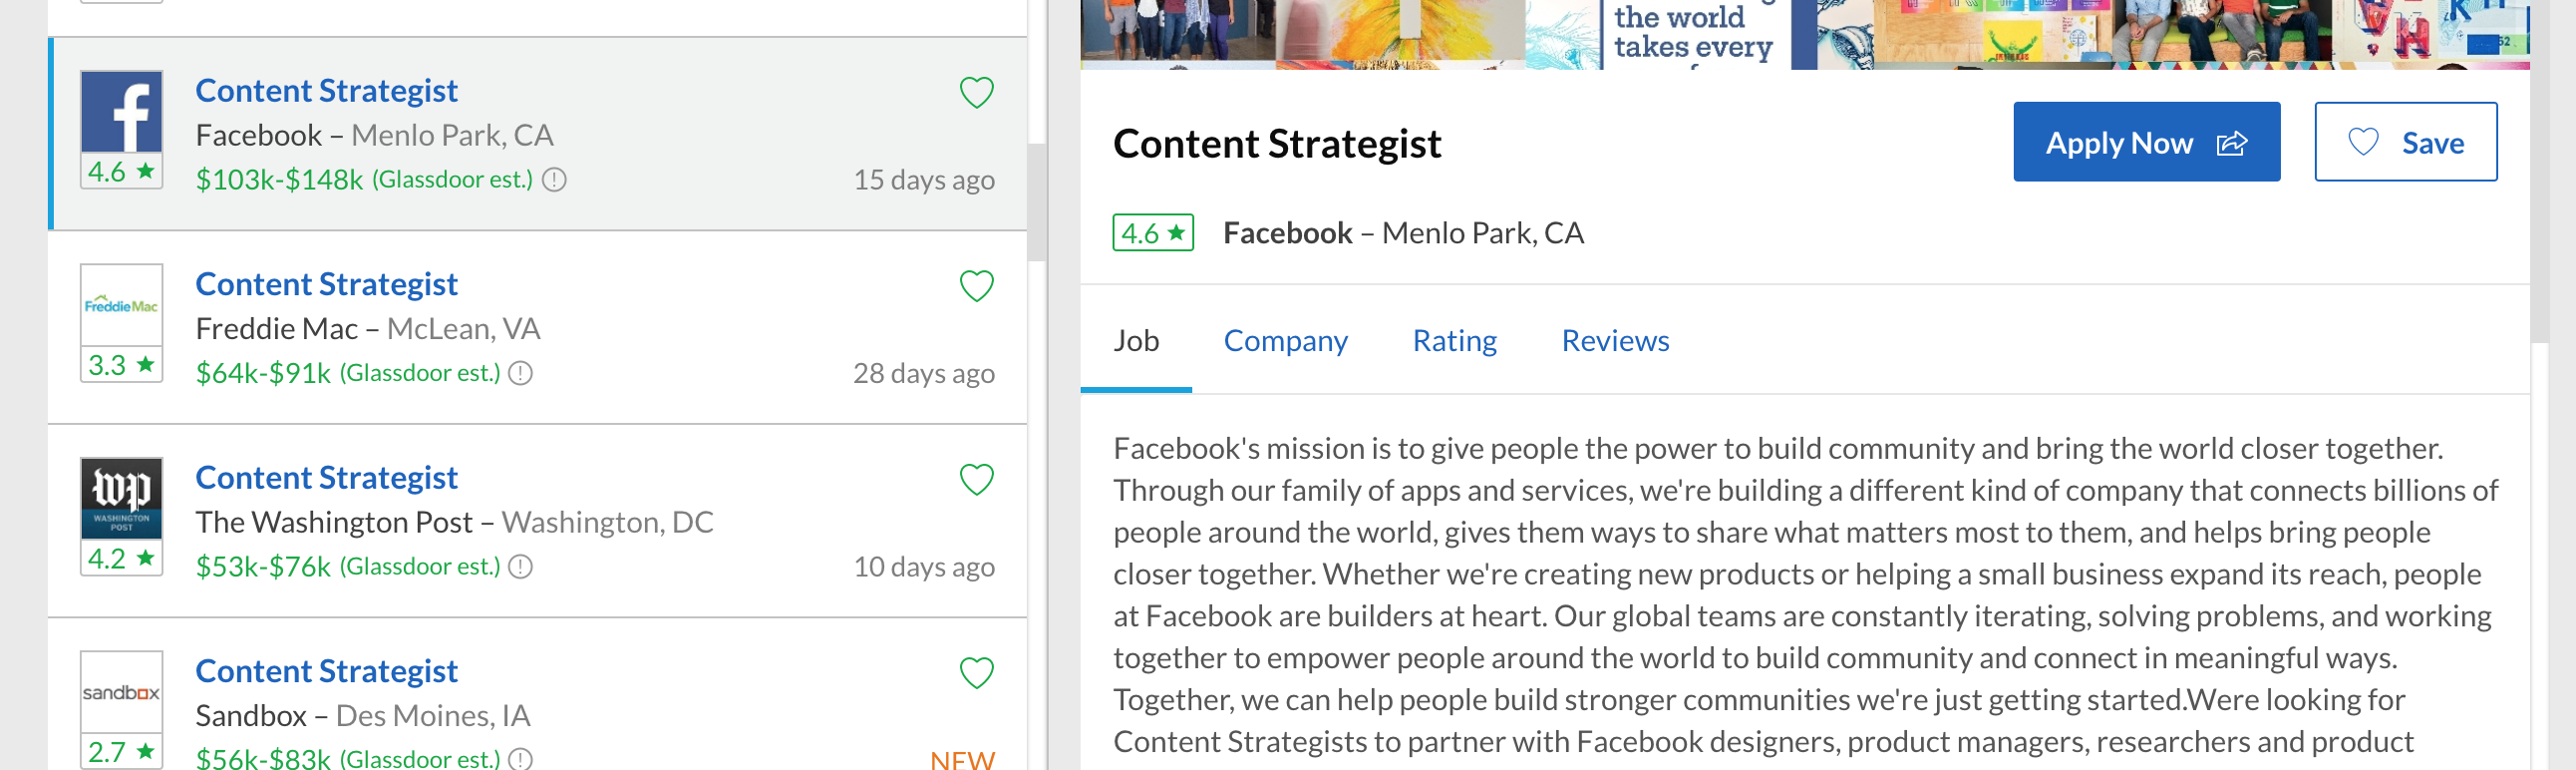 facebook content strategist hiring